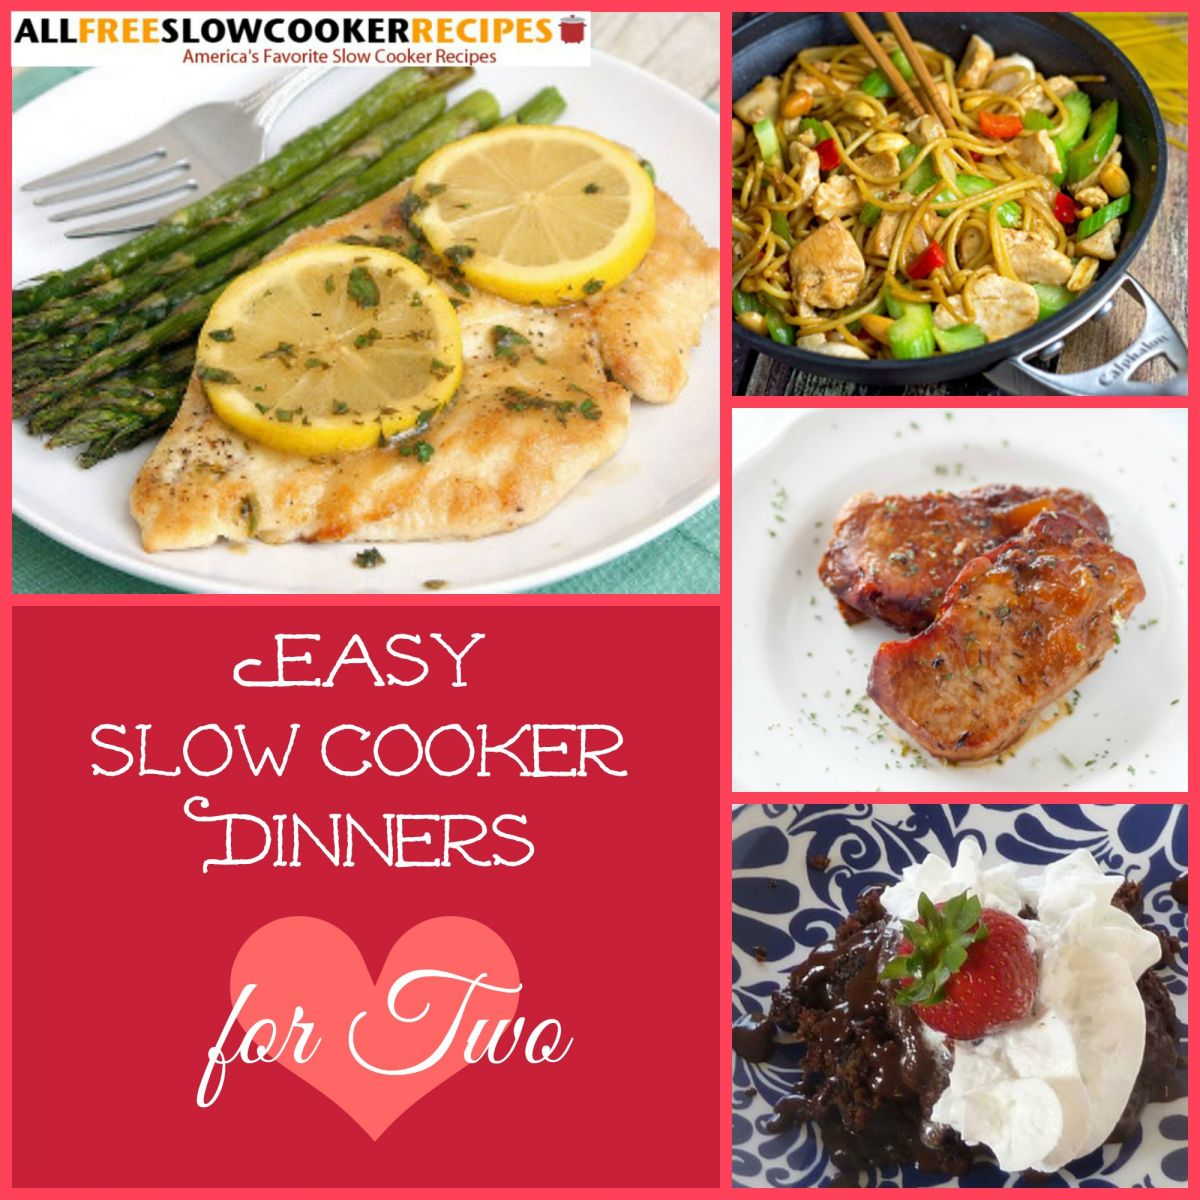 18 Easy Slow Cooker Recipes for Two | AllFreeSlowCookerRecipes.com